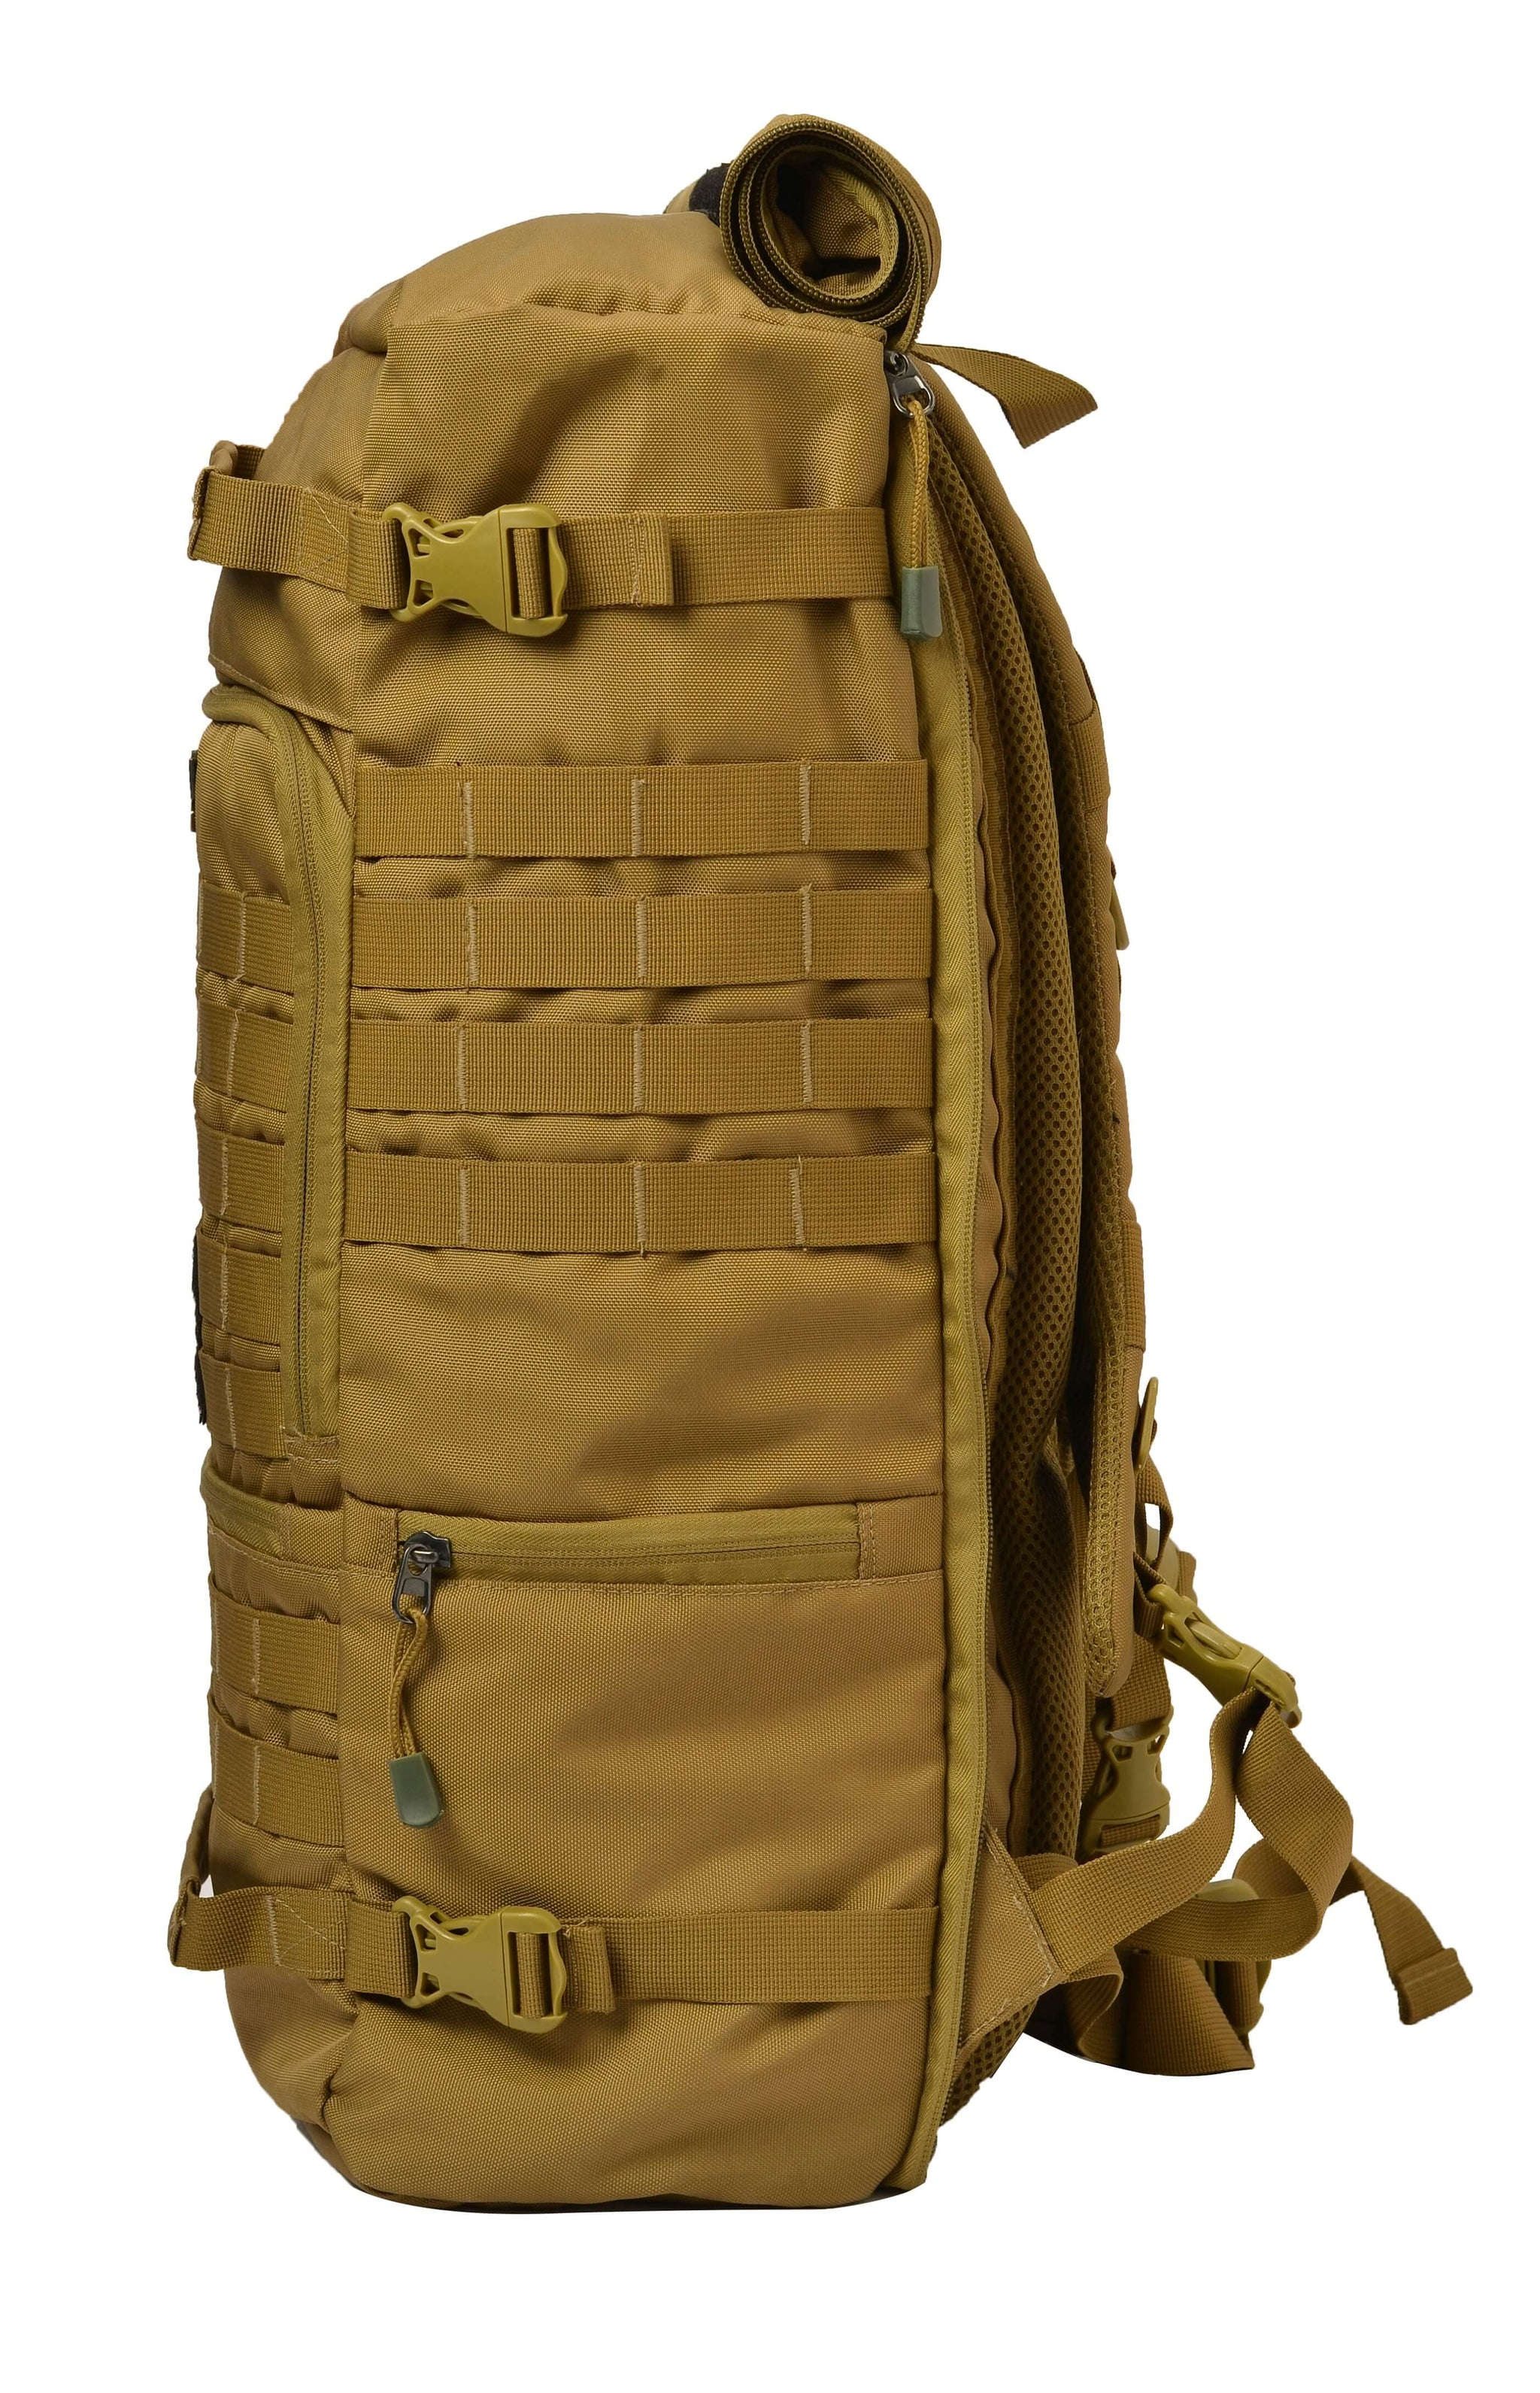 F Gear Military Garrison 36 Liters Rucksack Backpack (Khaki)